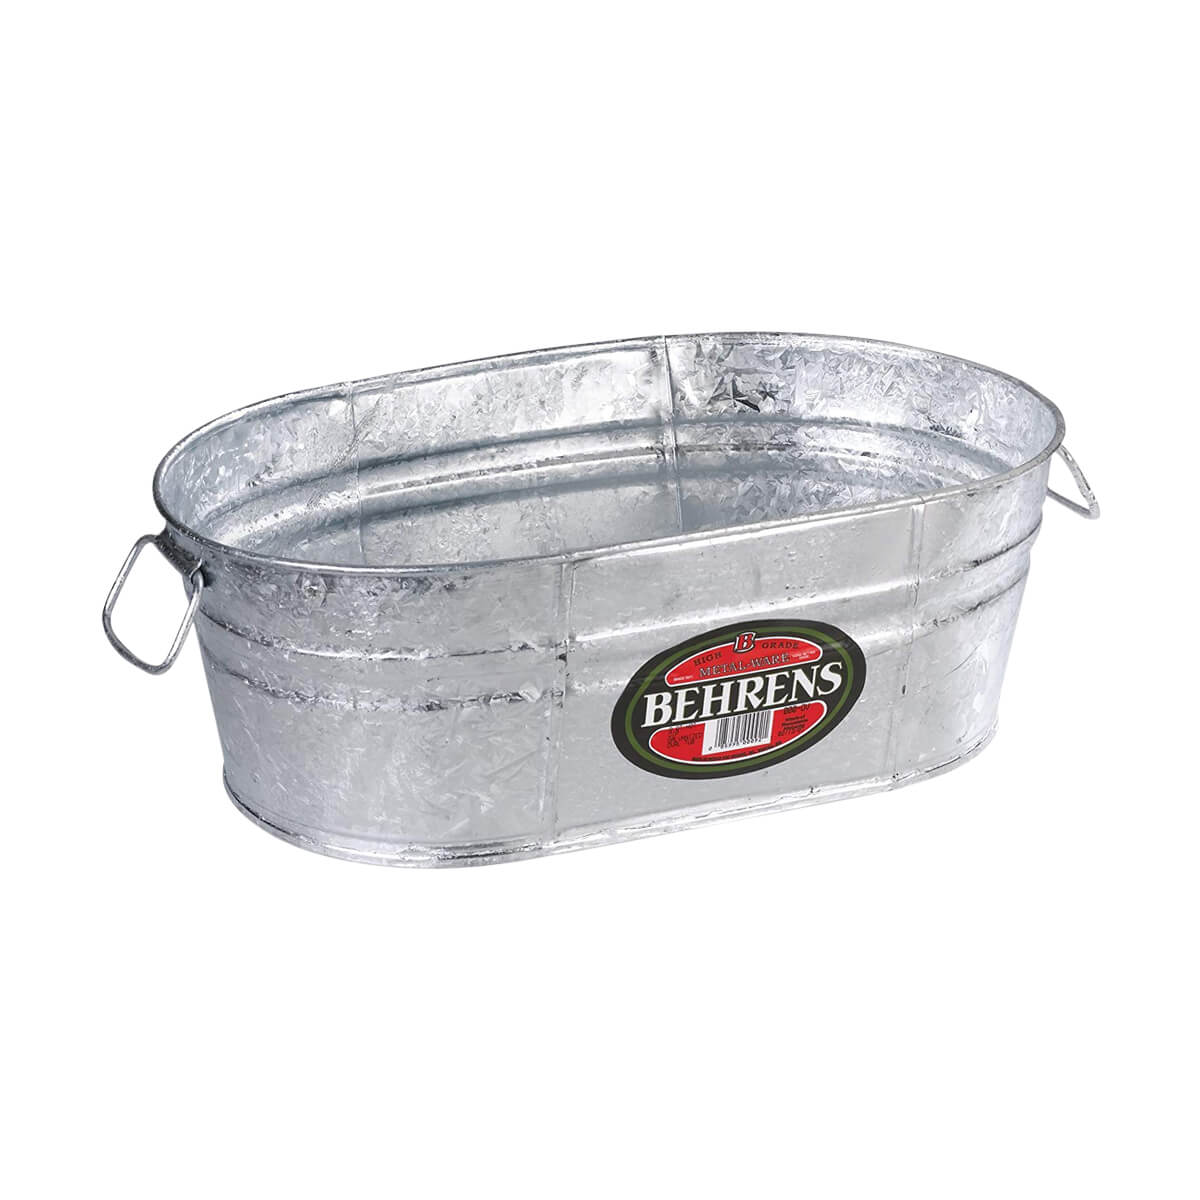 4 Gallon Oval Galvanized Tub Planter